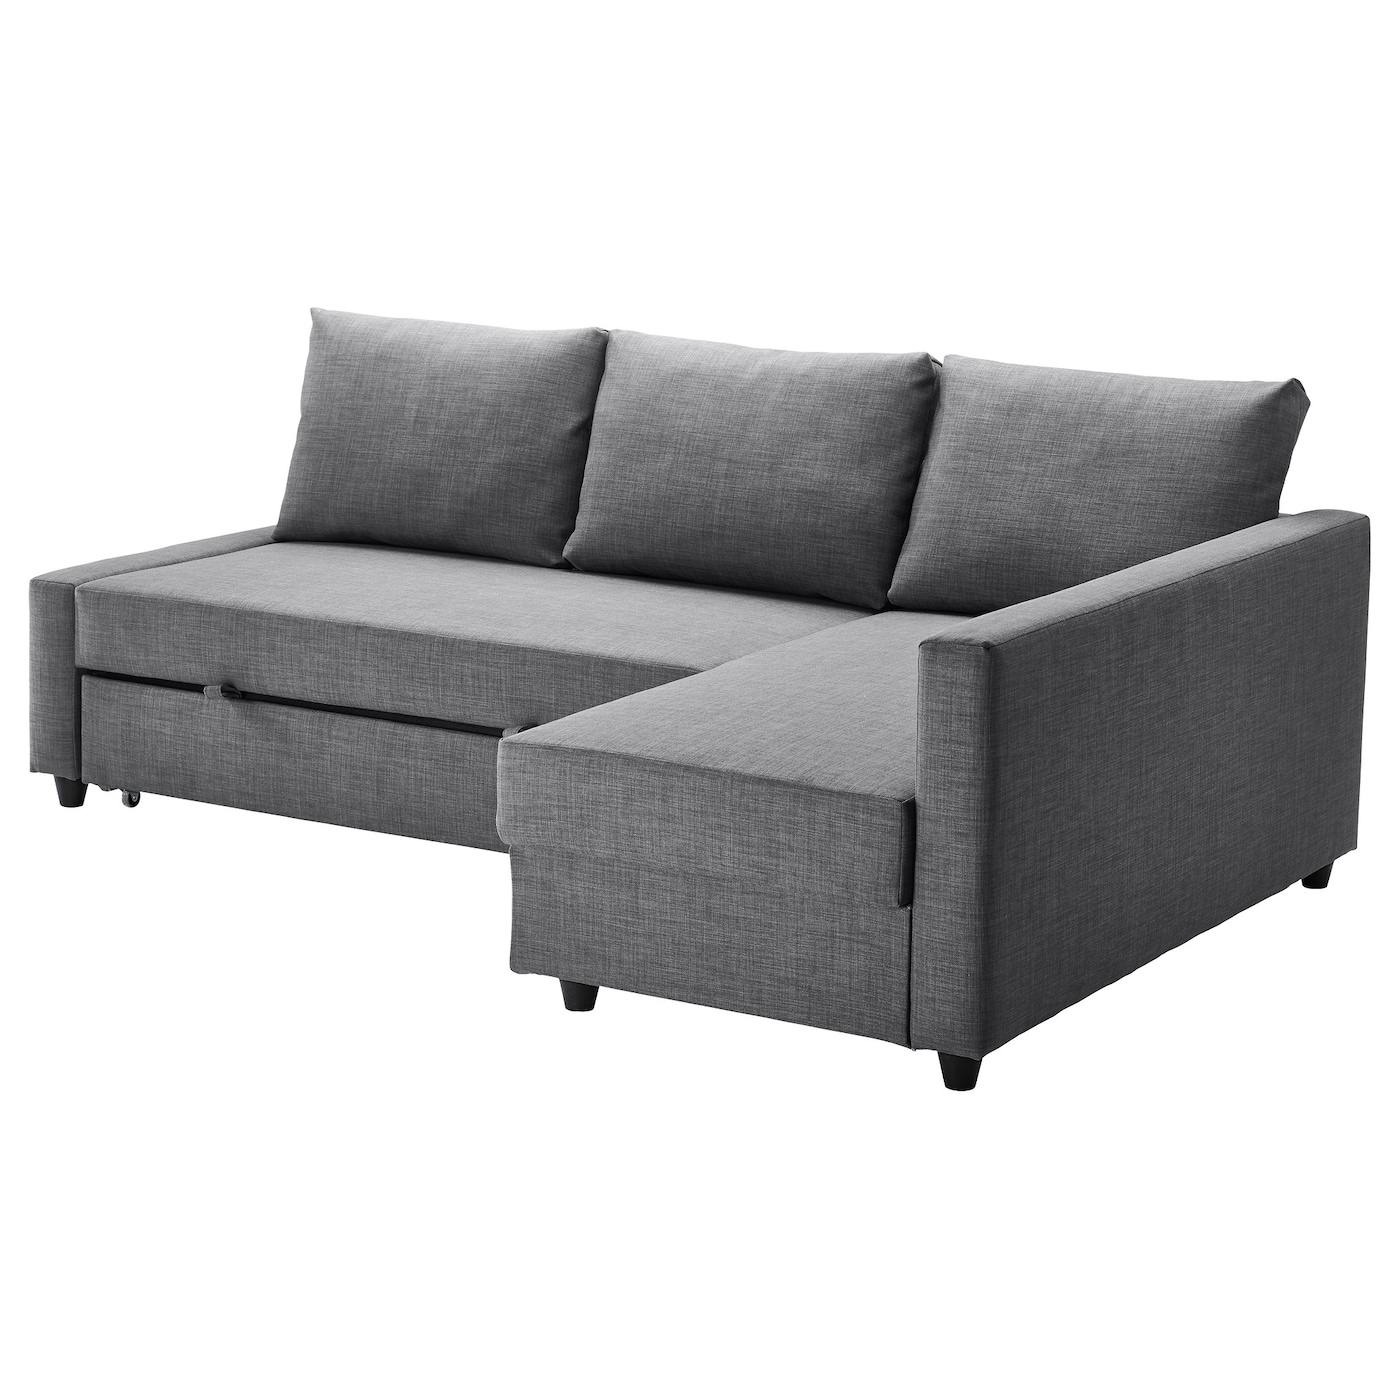 Corner sofa-bed with storage FRIHETEN Skiftebo dark gray